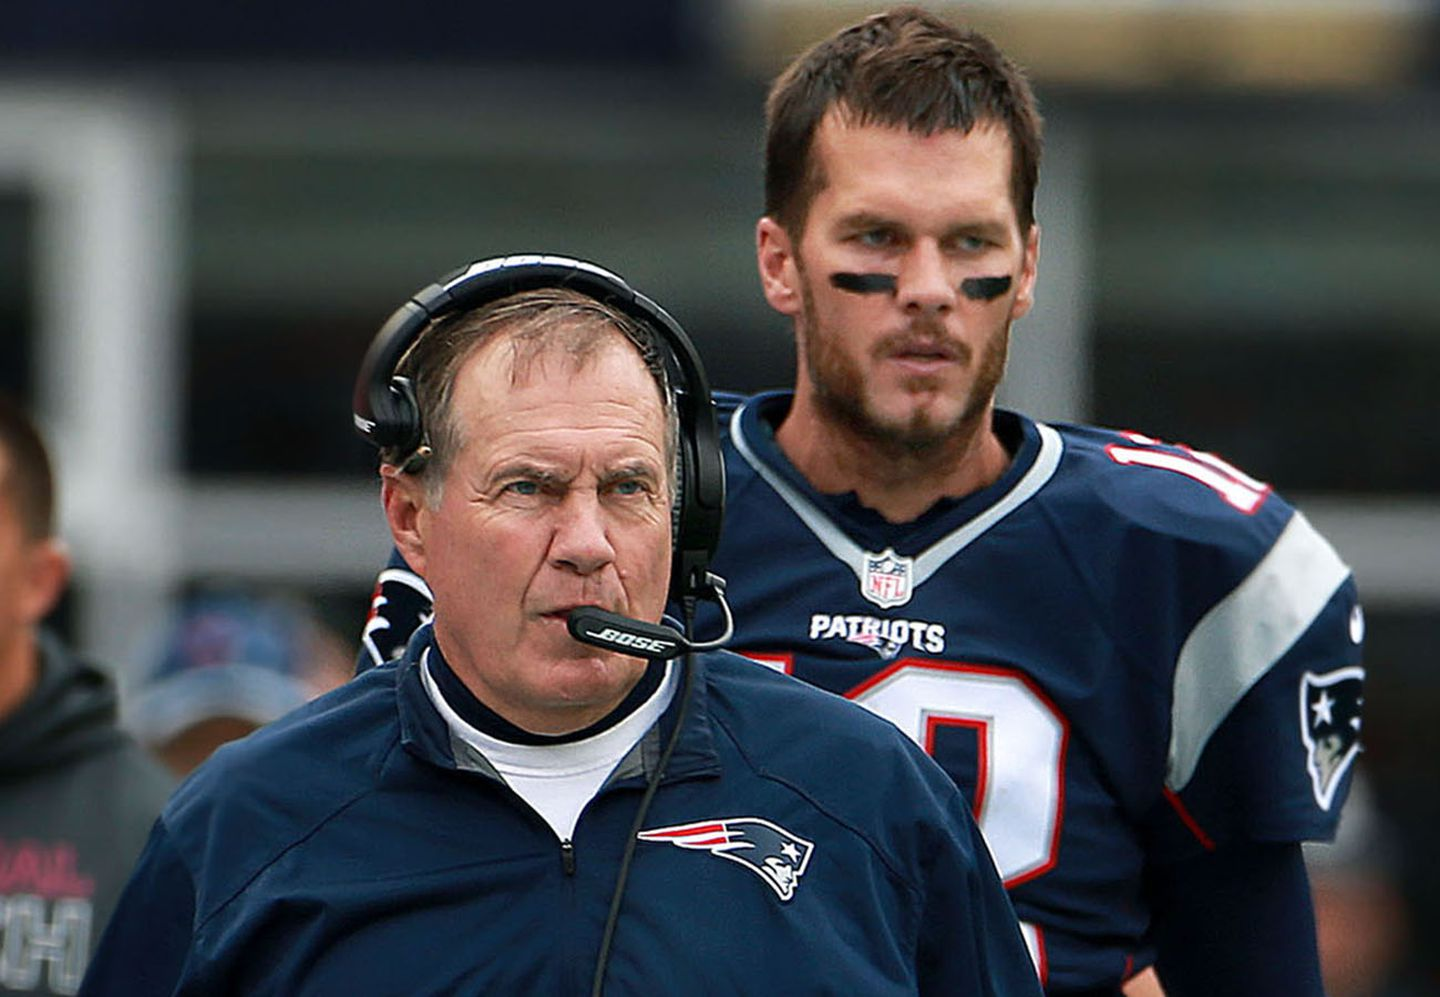 Brady and Belichick: The Final Chapter by Jamie Edwards